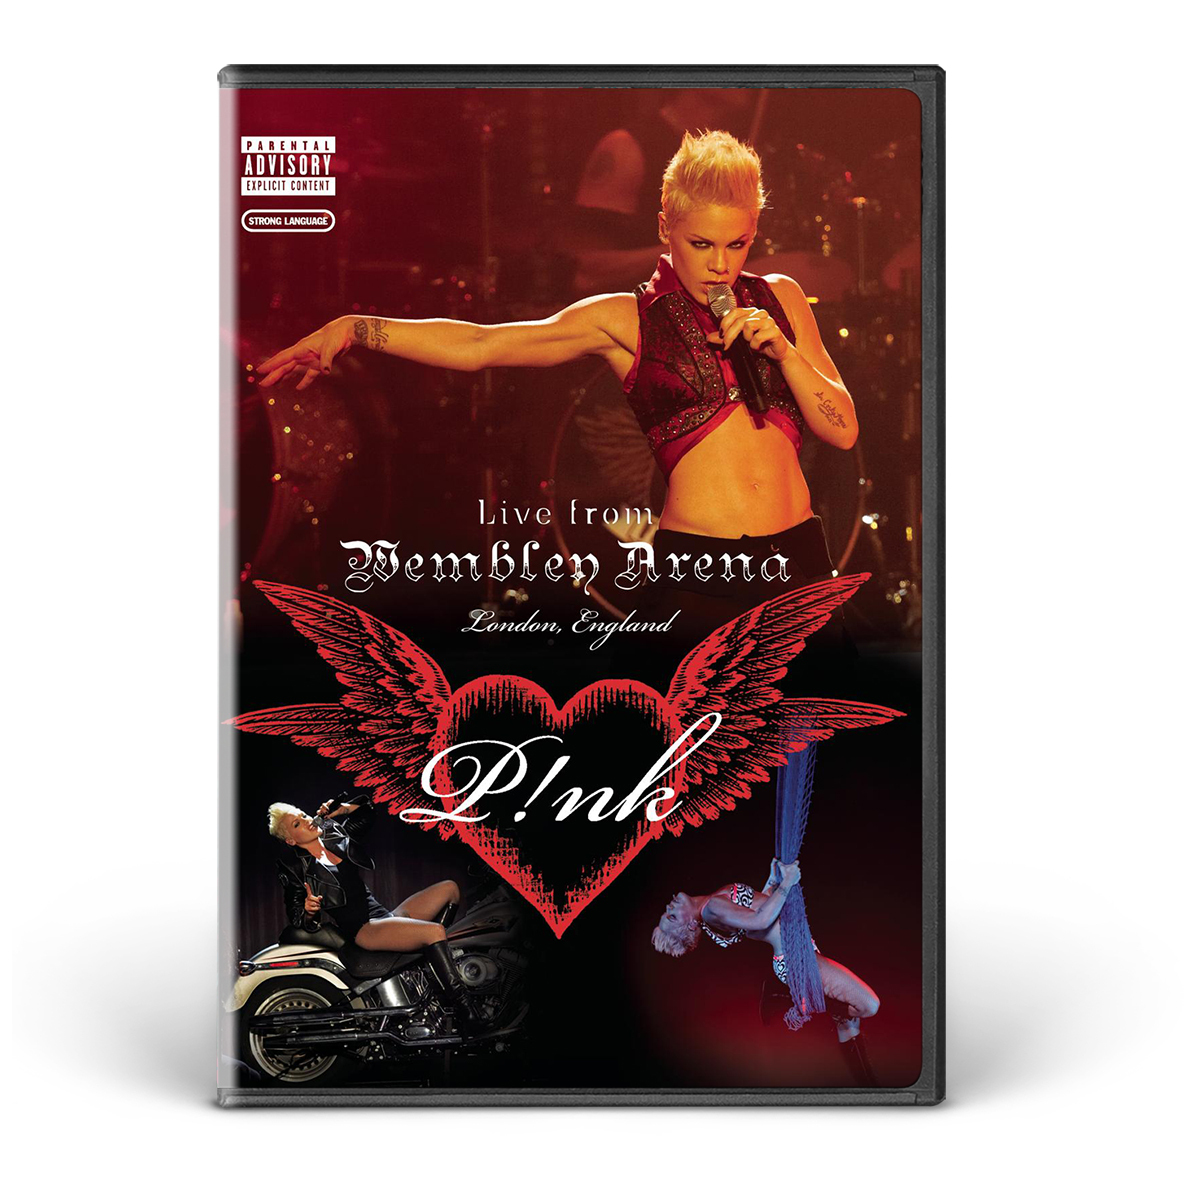 Live From Wembley Arena, London, England DVD